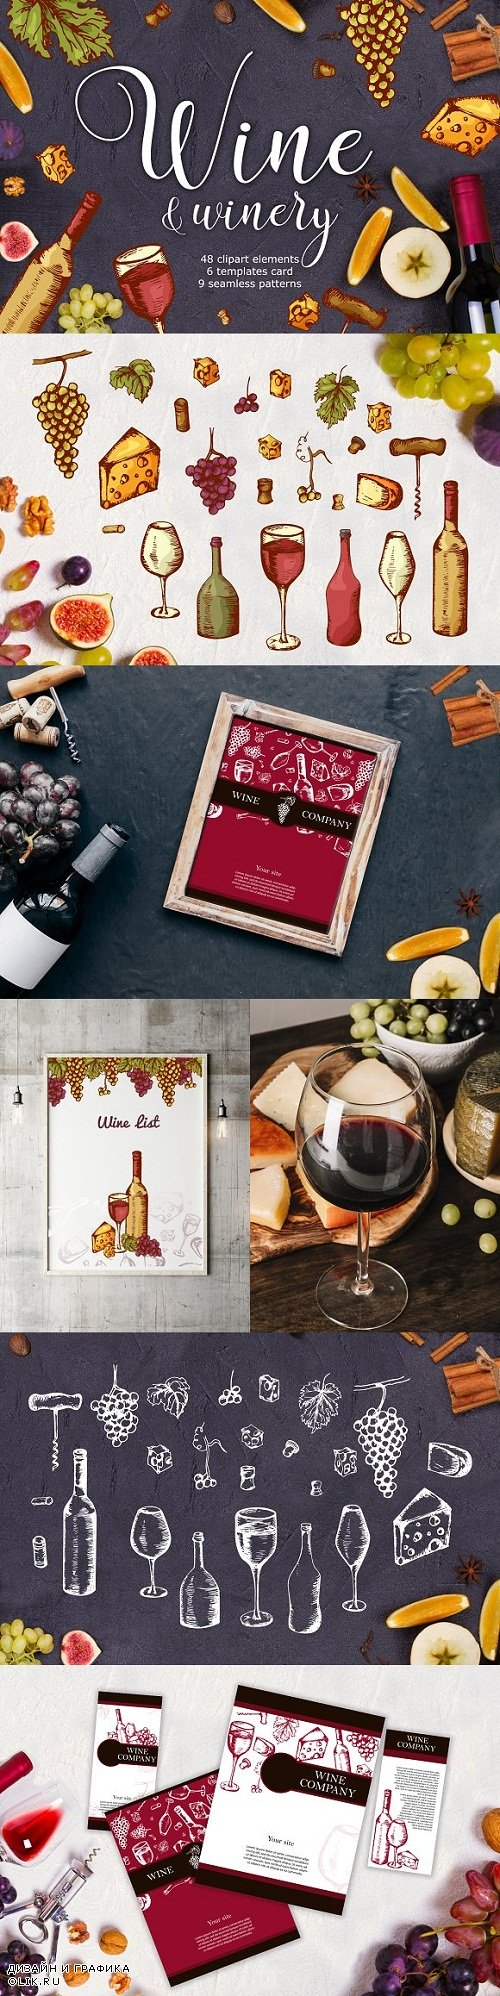 Wine&winery-clipart+bonus 3264948